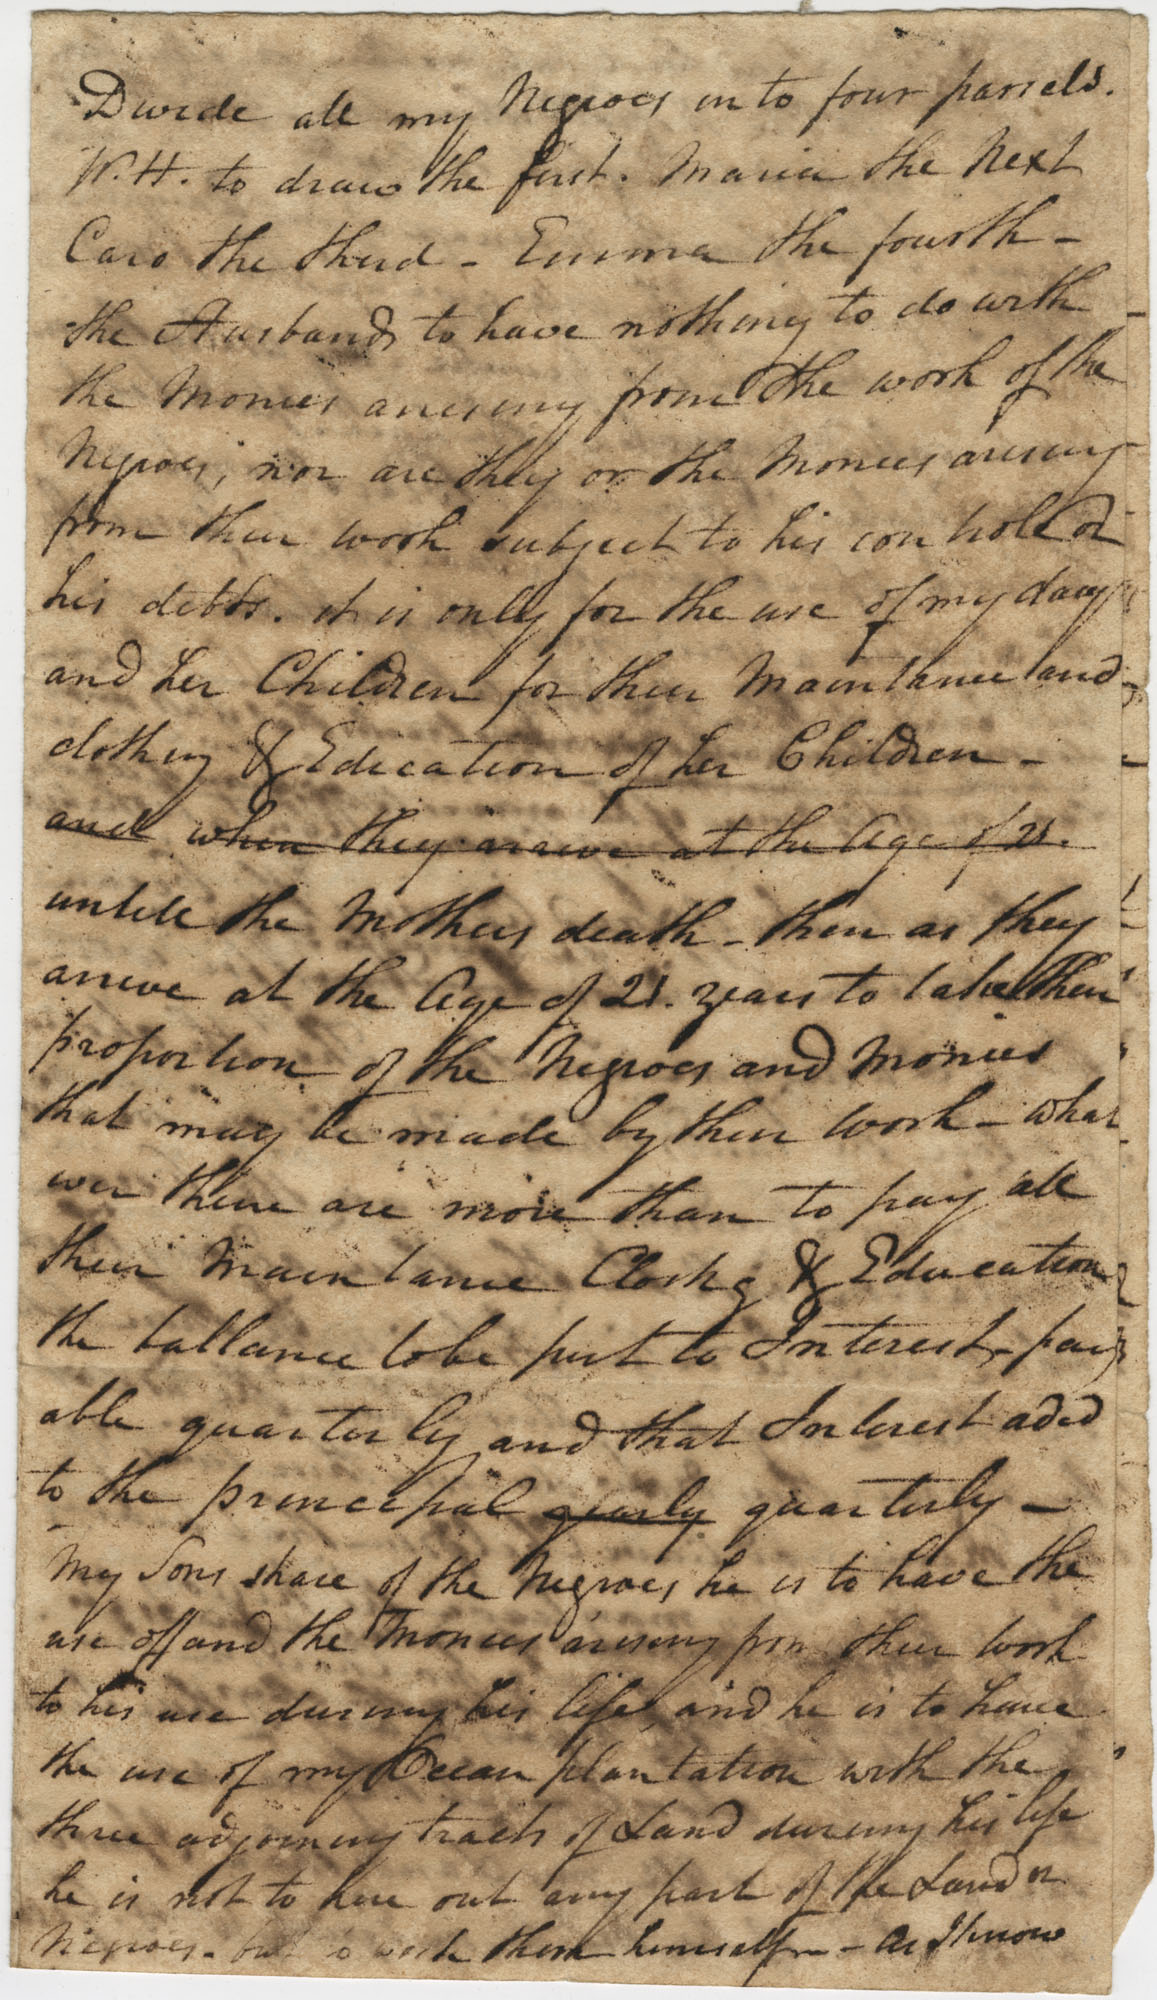 Portion of a will by Thomas Drayton[?], unsigned, undated